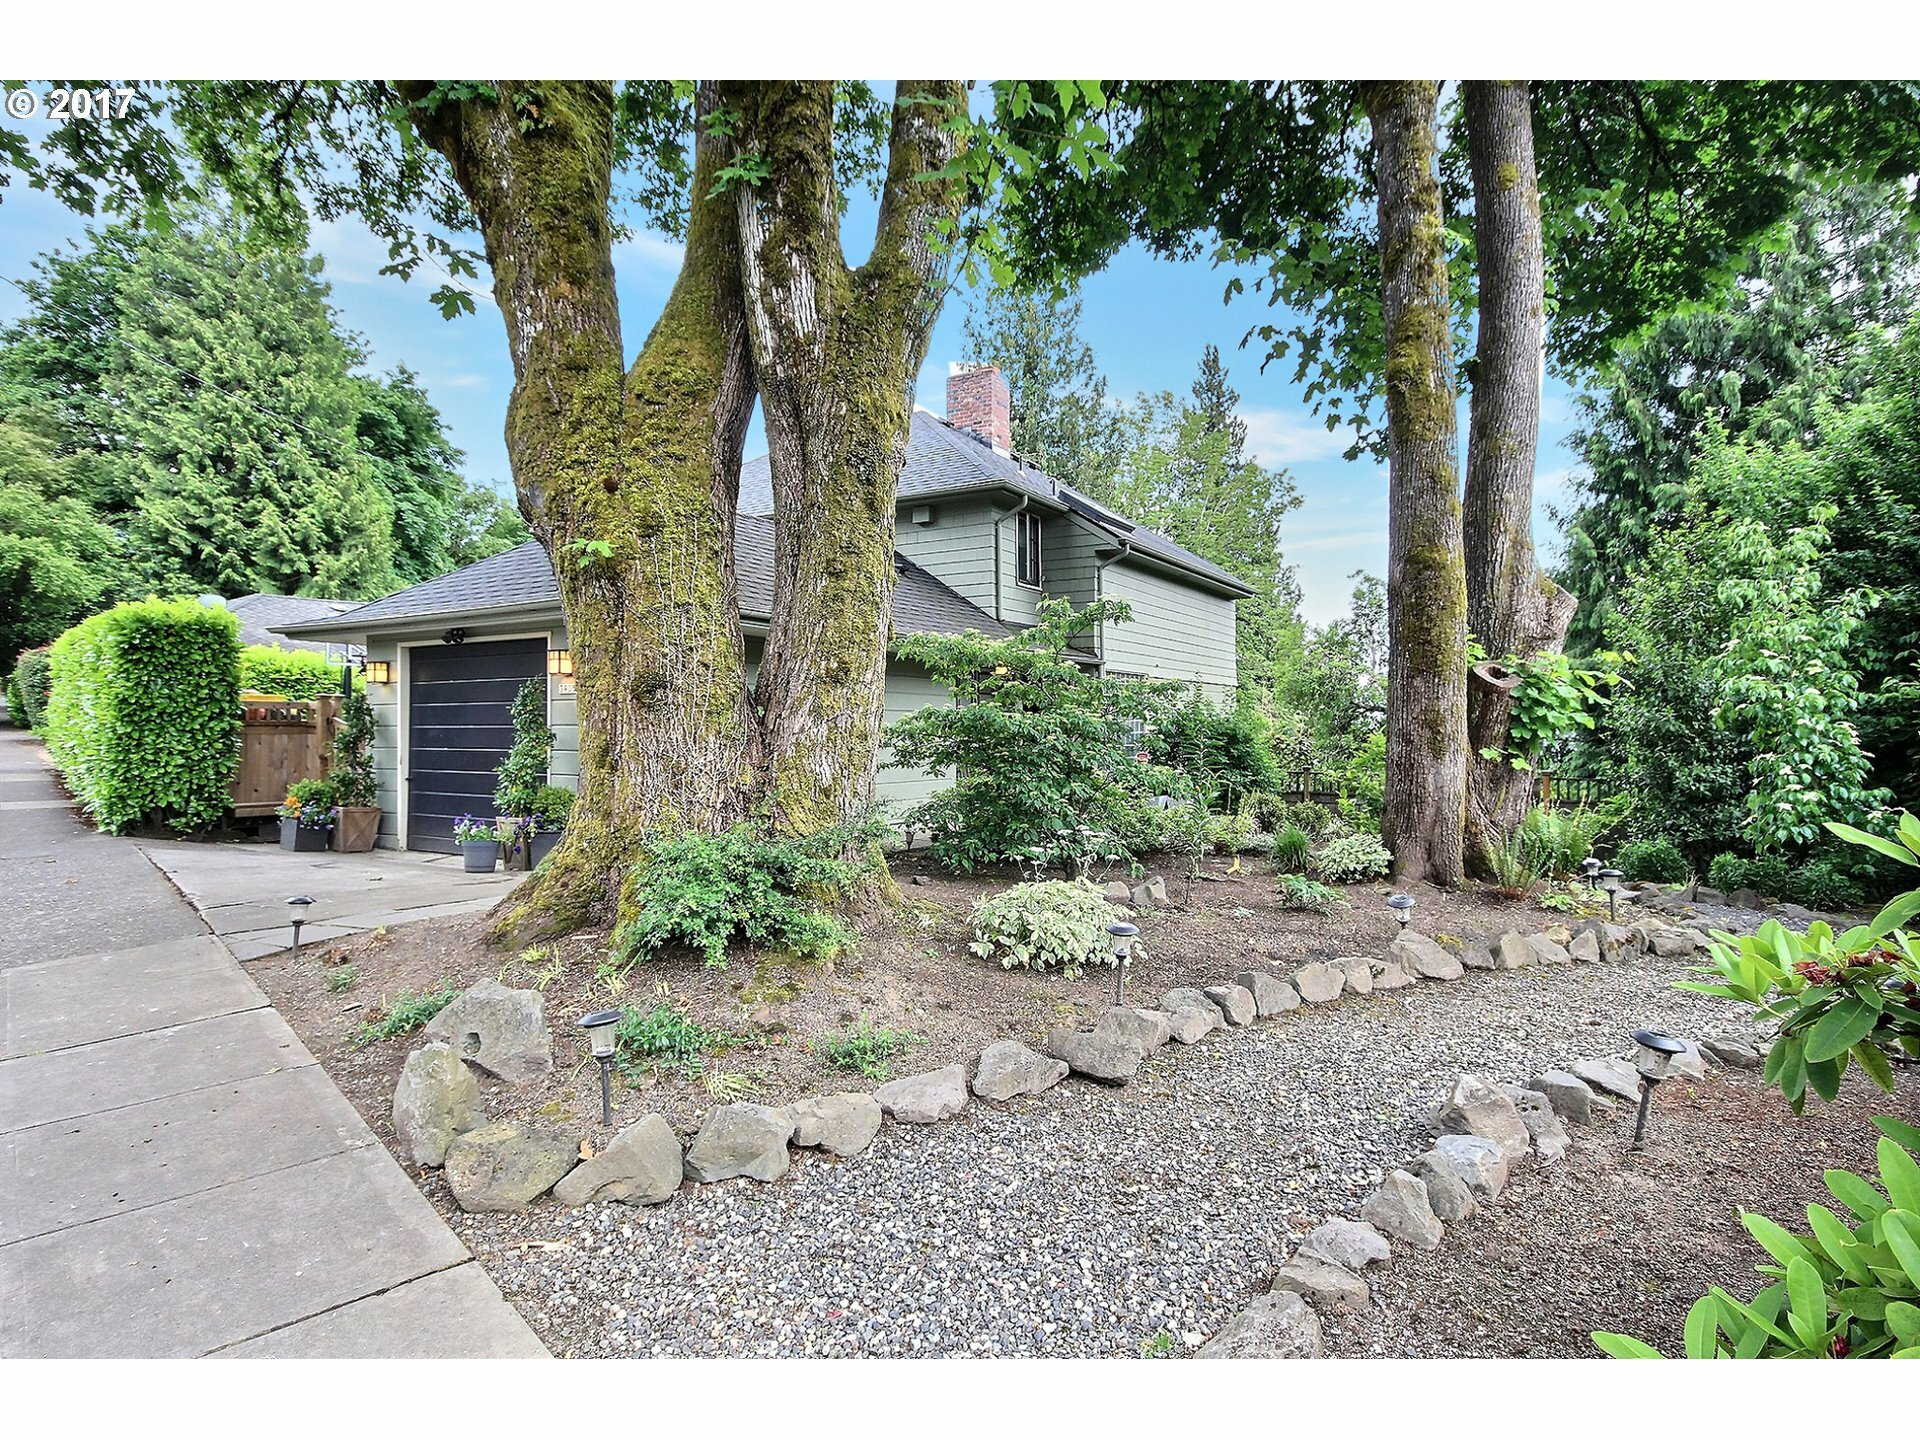 3905 Sw Council Crest Dr, Portland, OR - USA (photo 1)